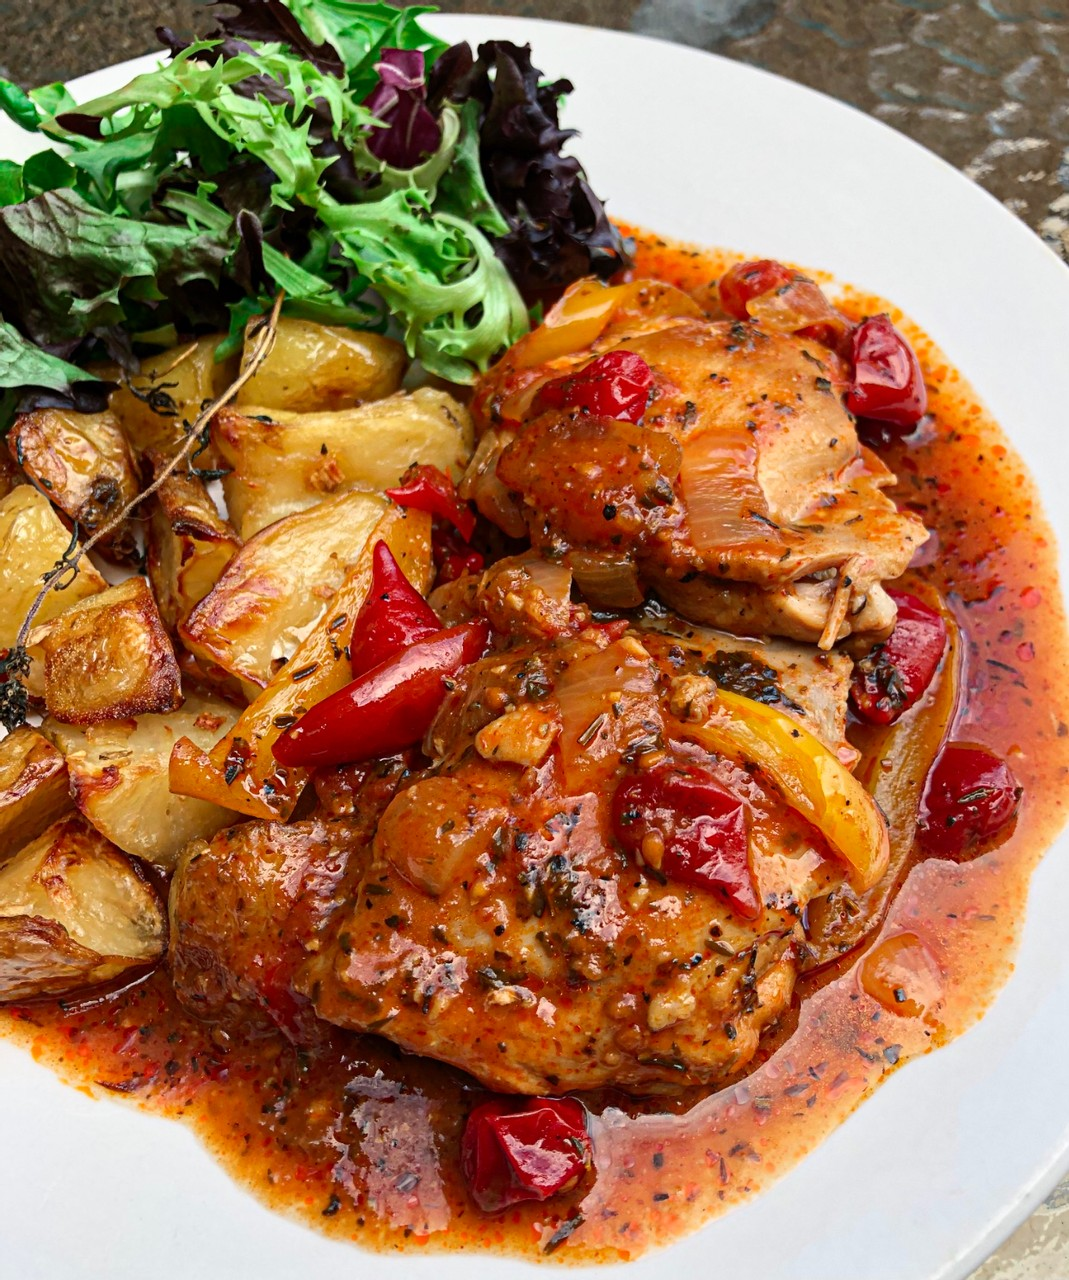 Oven cooked Spanish chicken